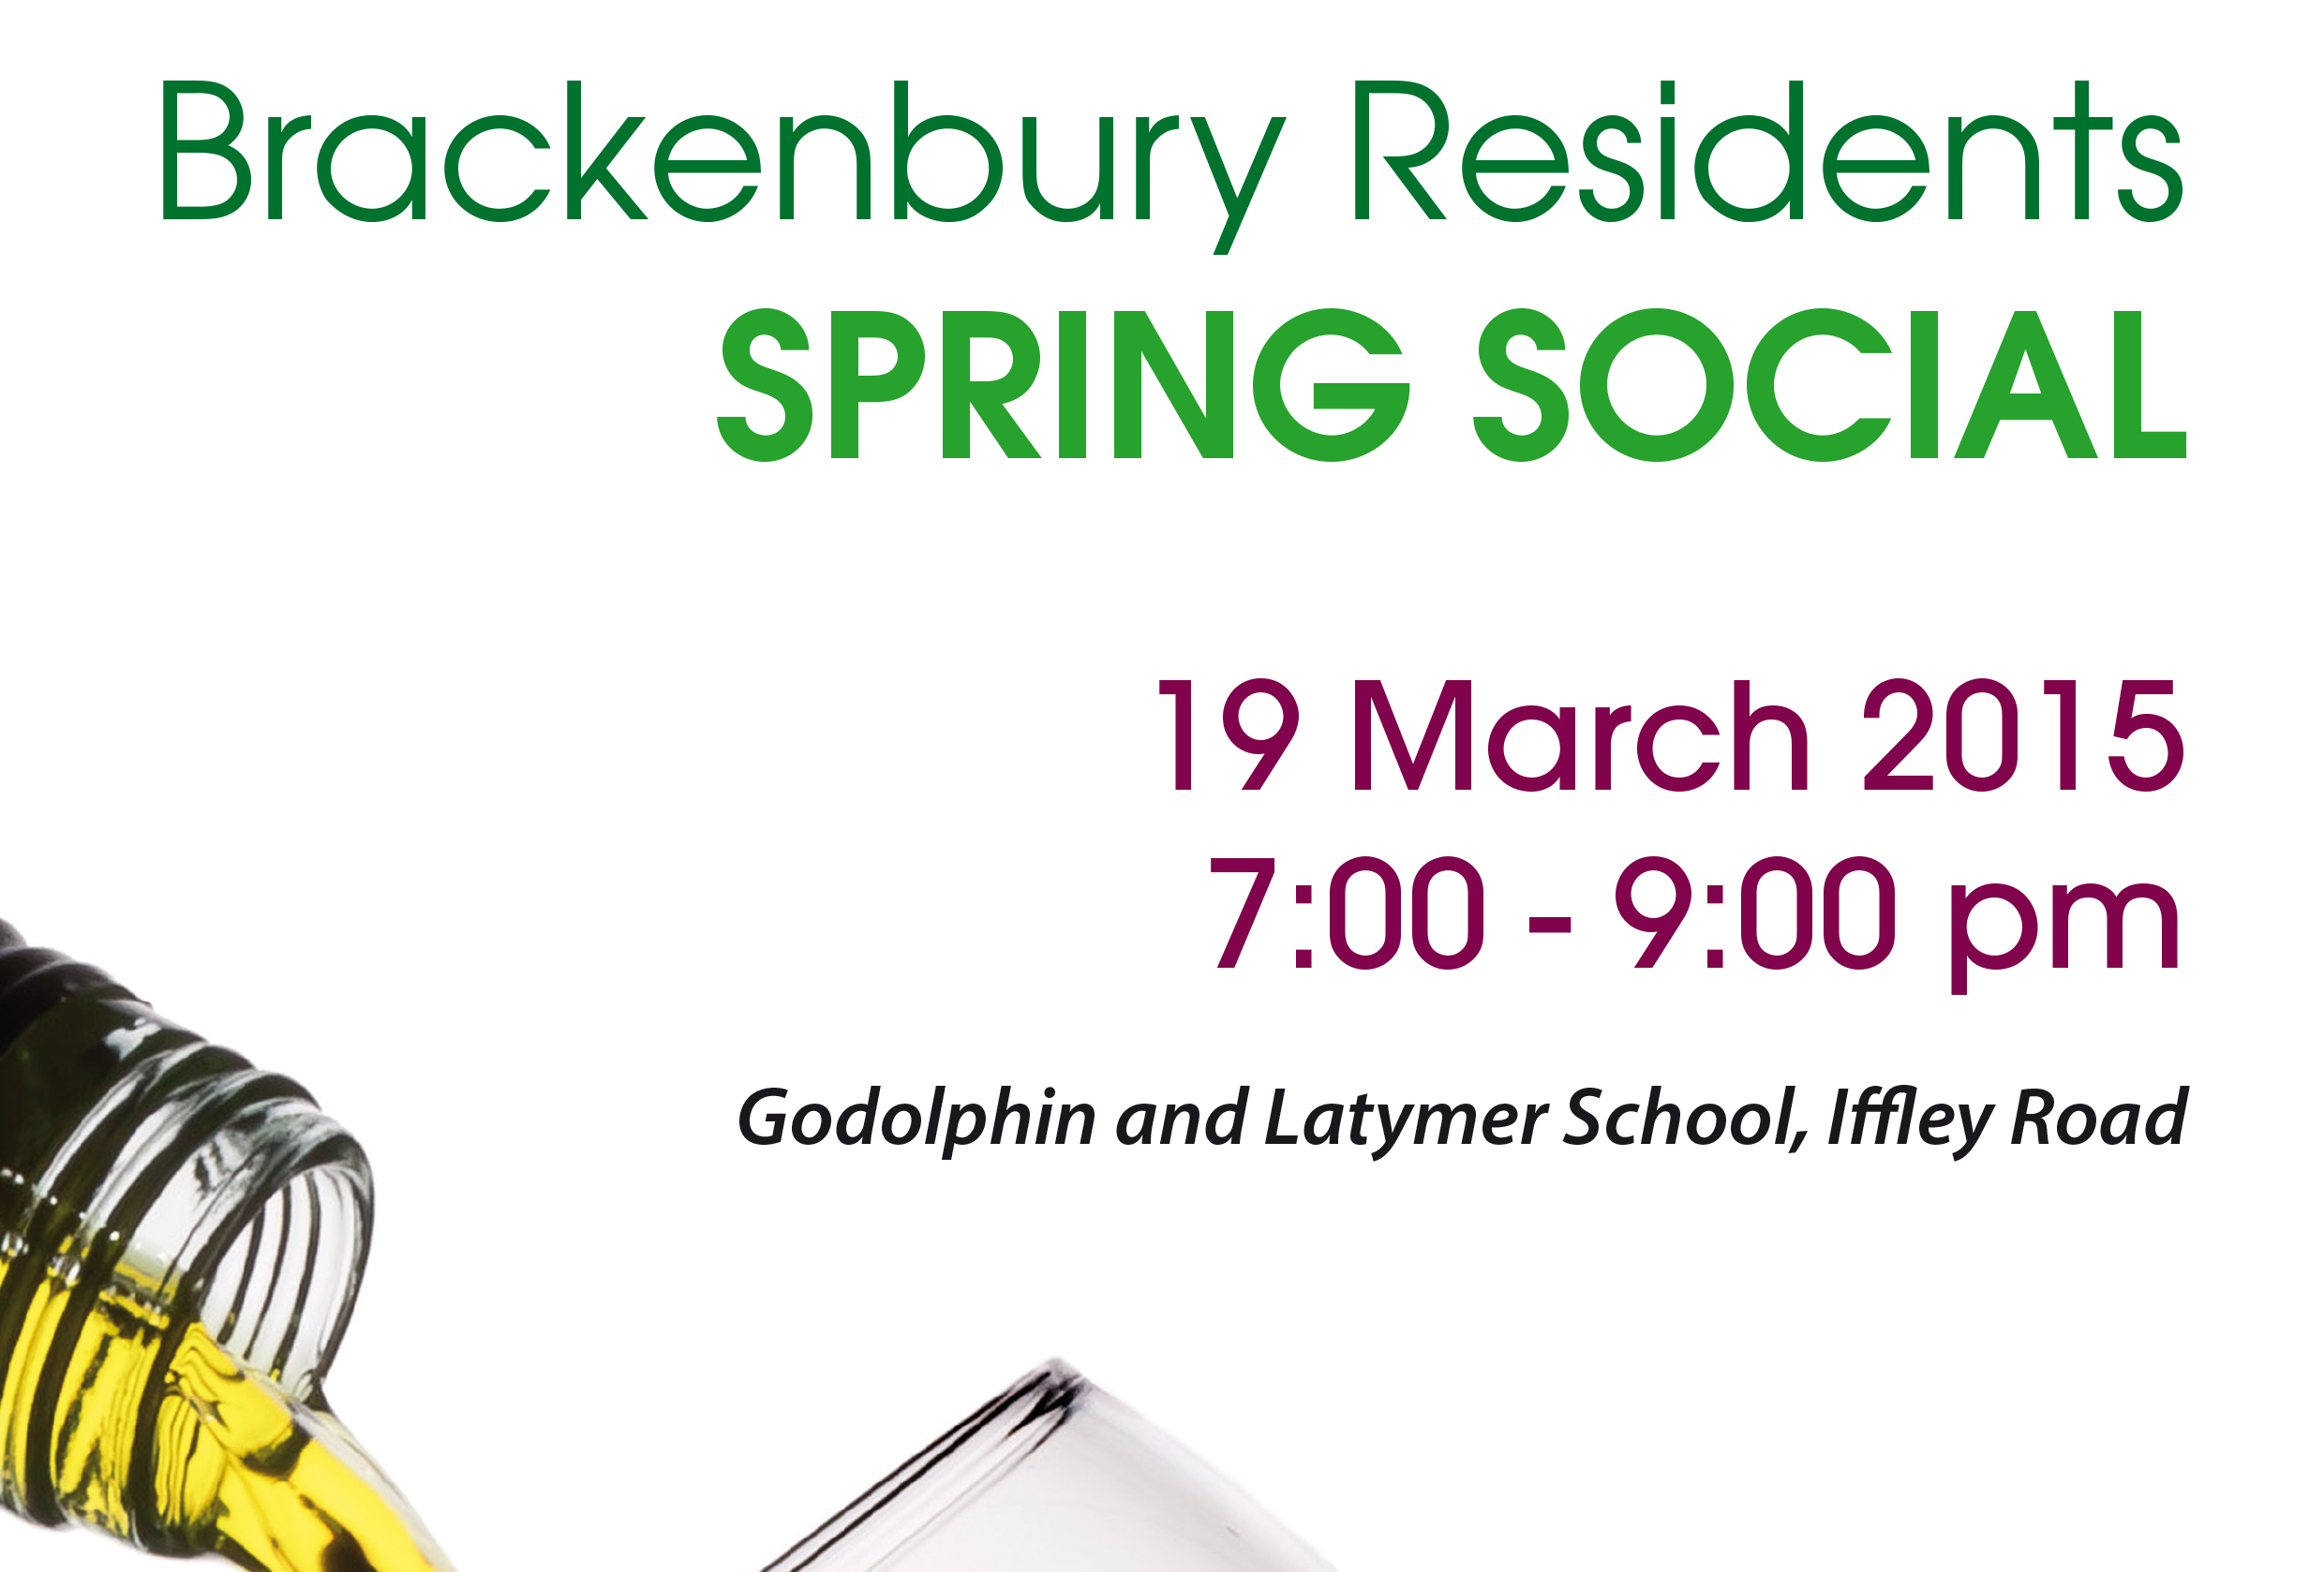 Brackenbury Residents Spring Social 19 March